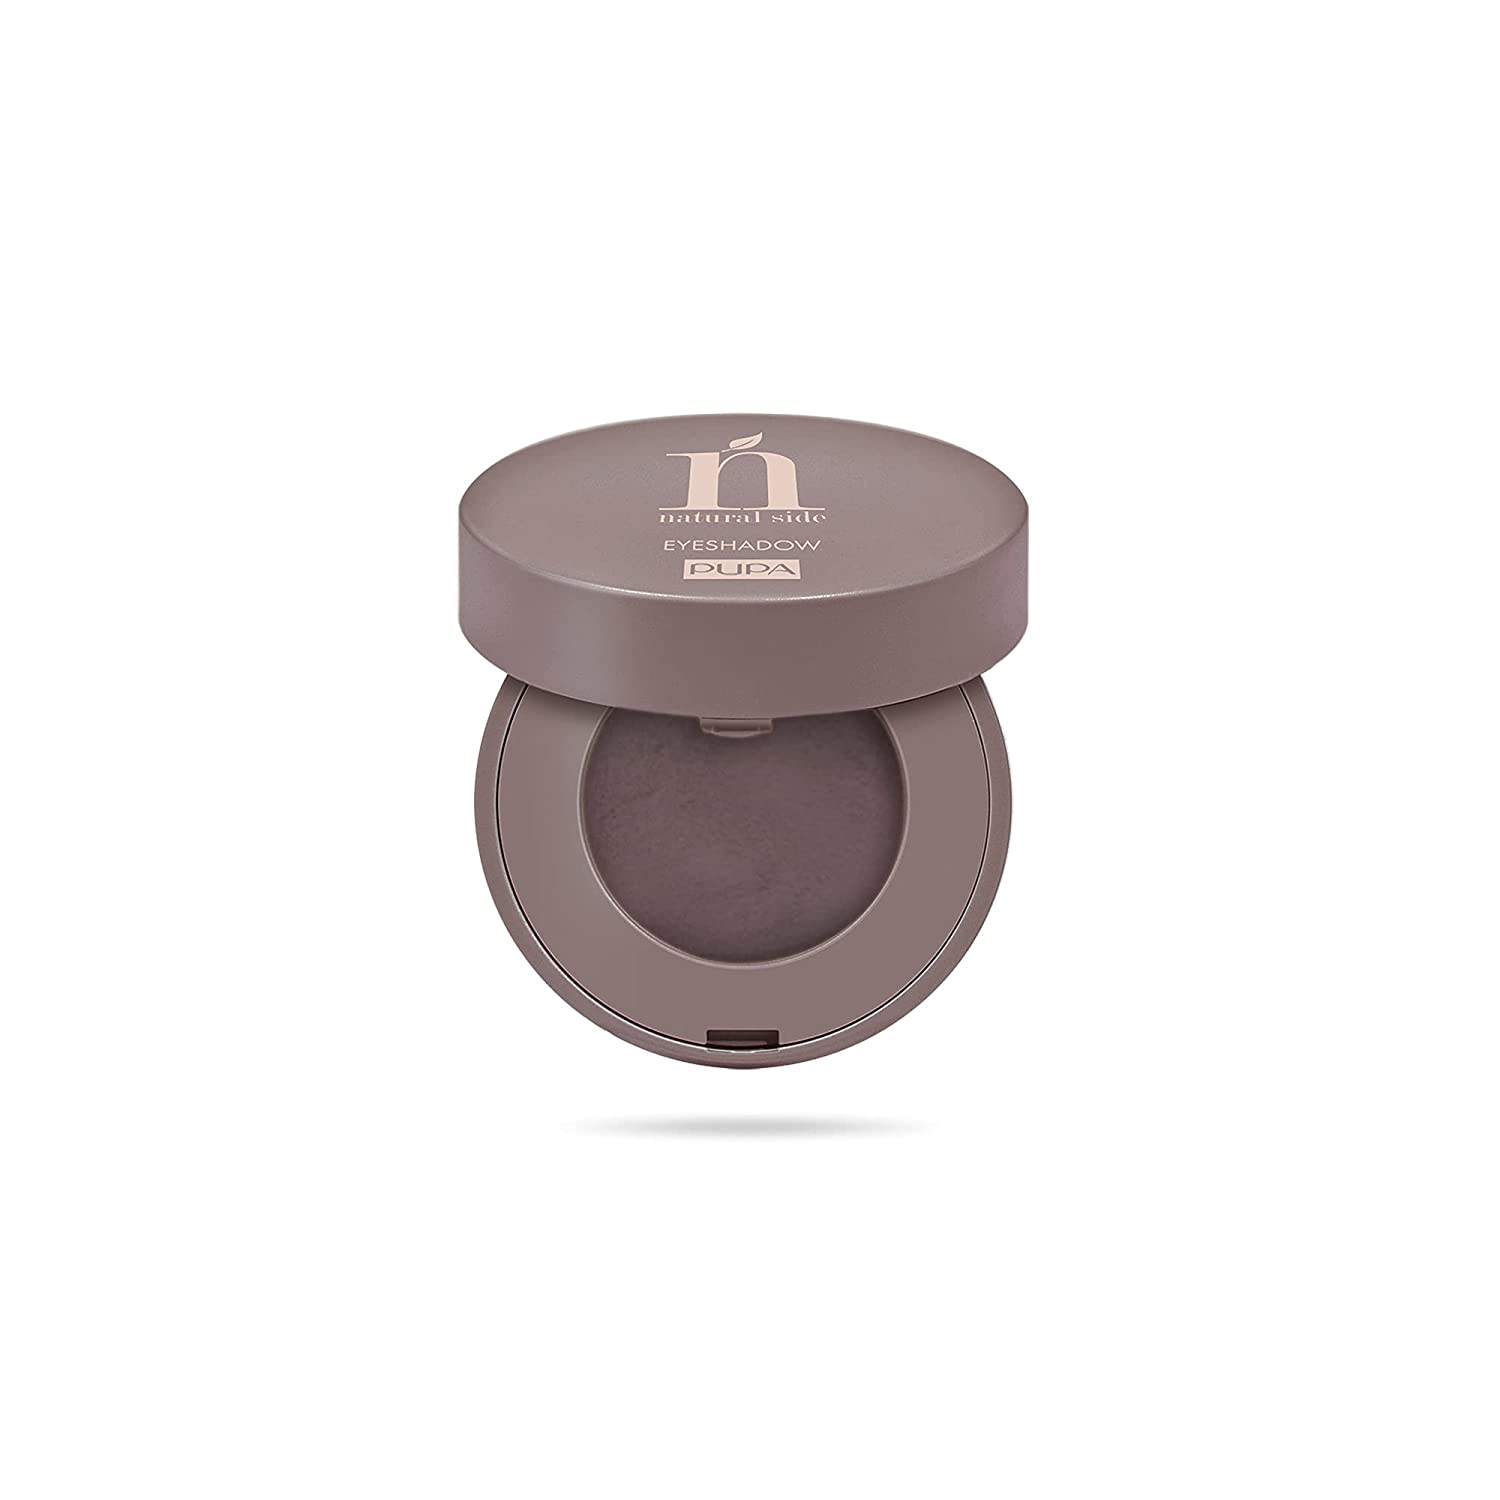 Natural Side Compact Eyeshadow – 001 Violet Graphite by Pupa Milano for Women – 0.07 oz Eye Shadow